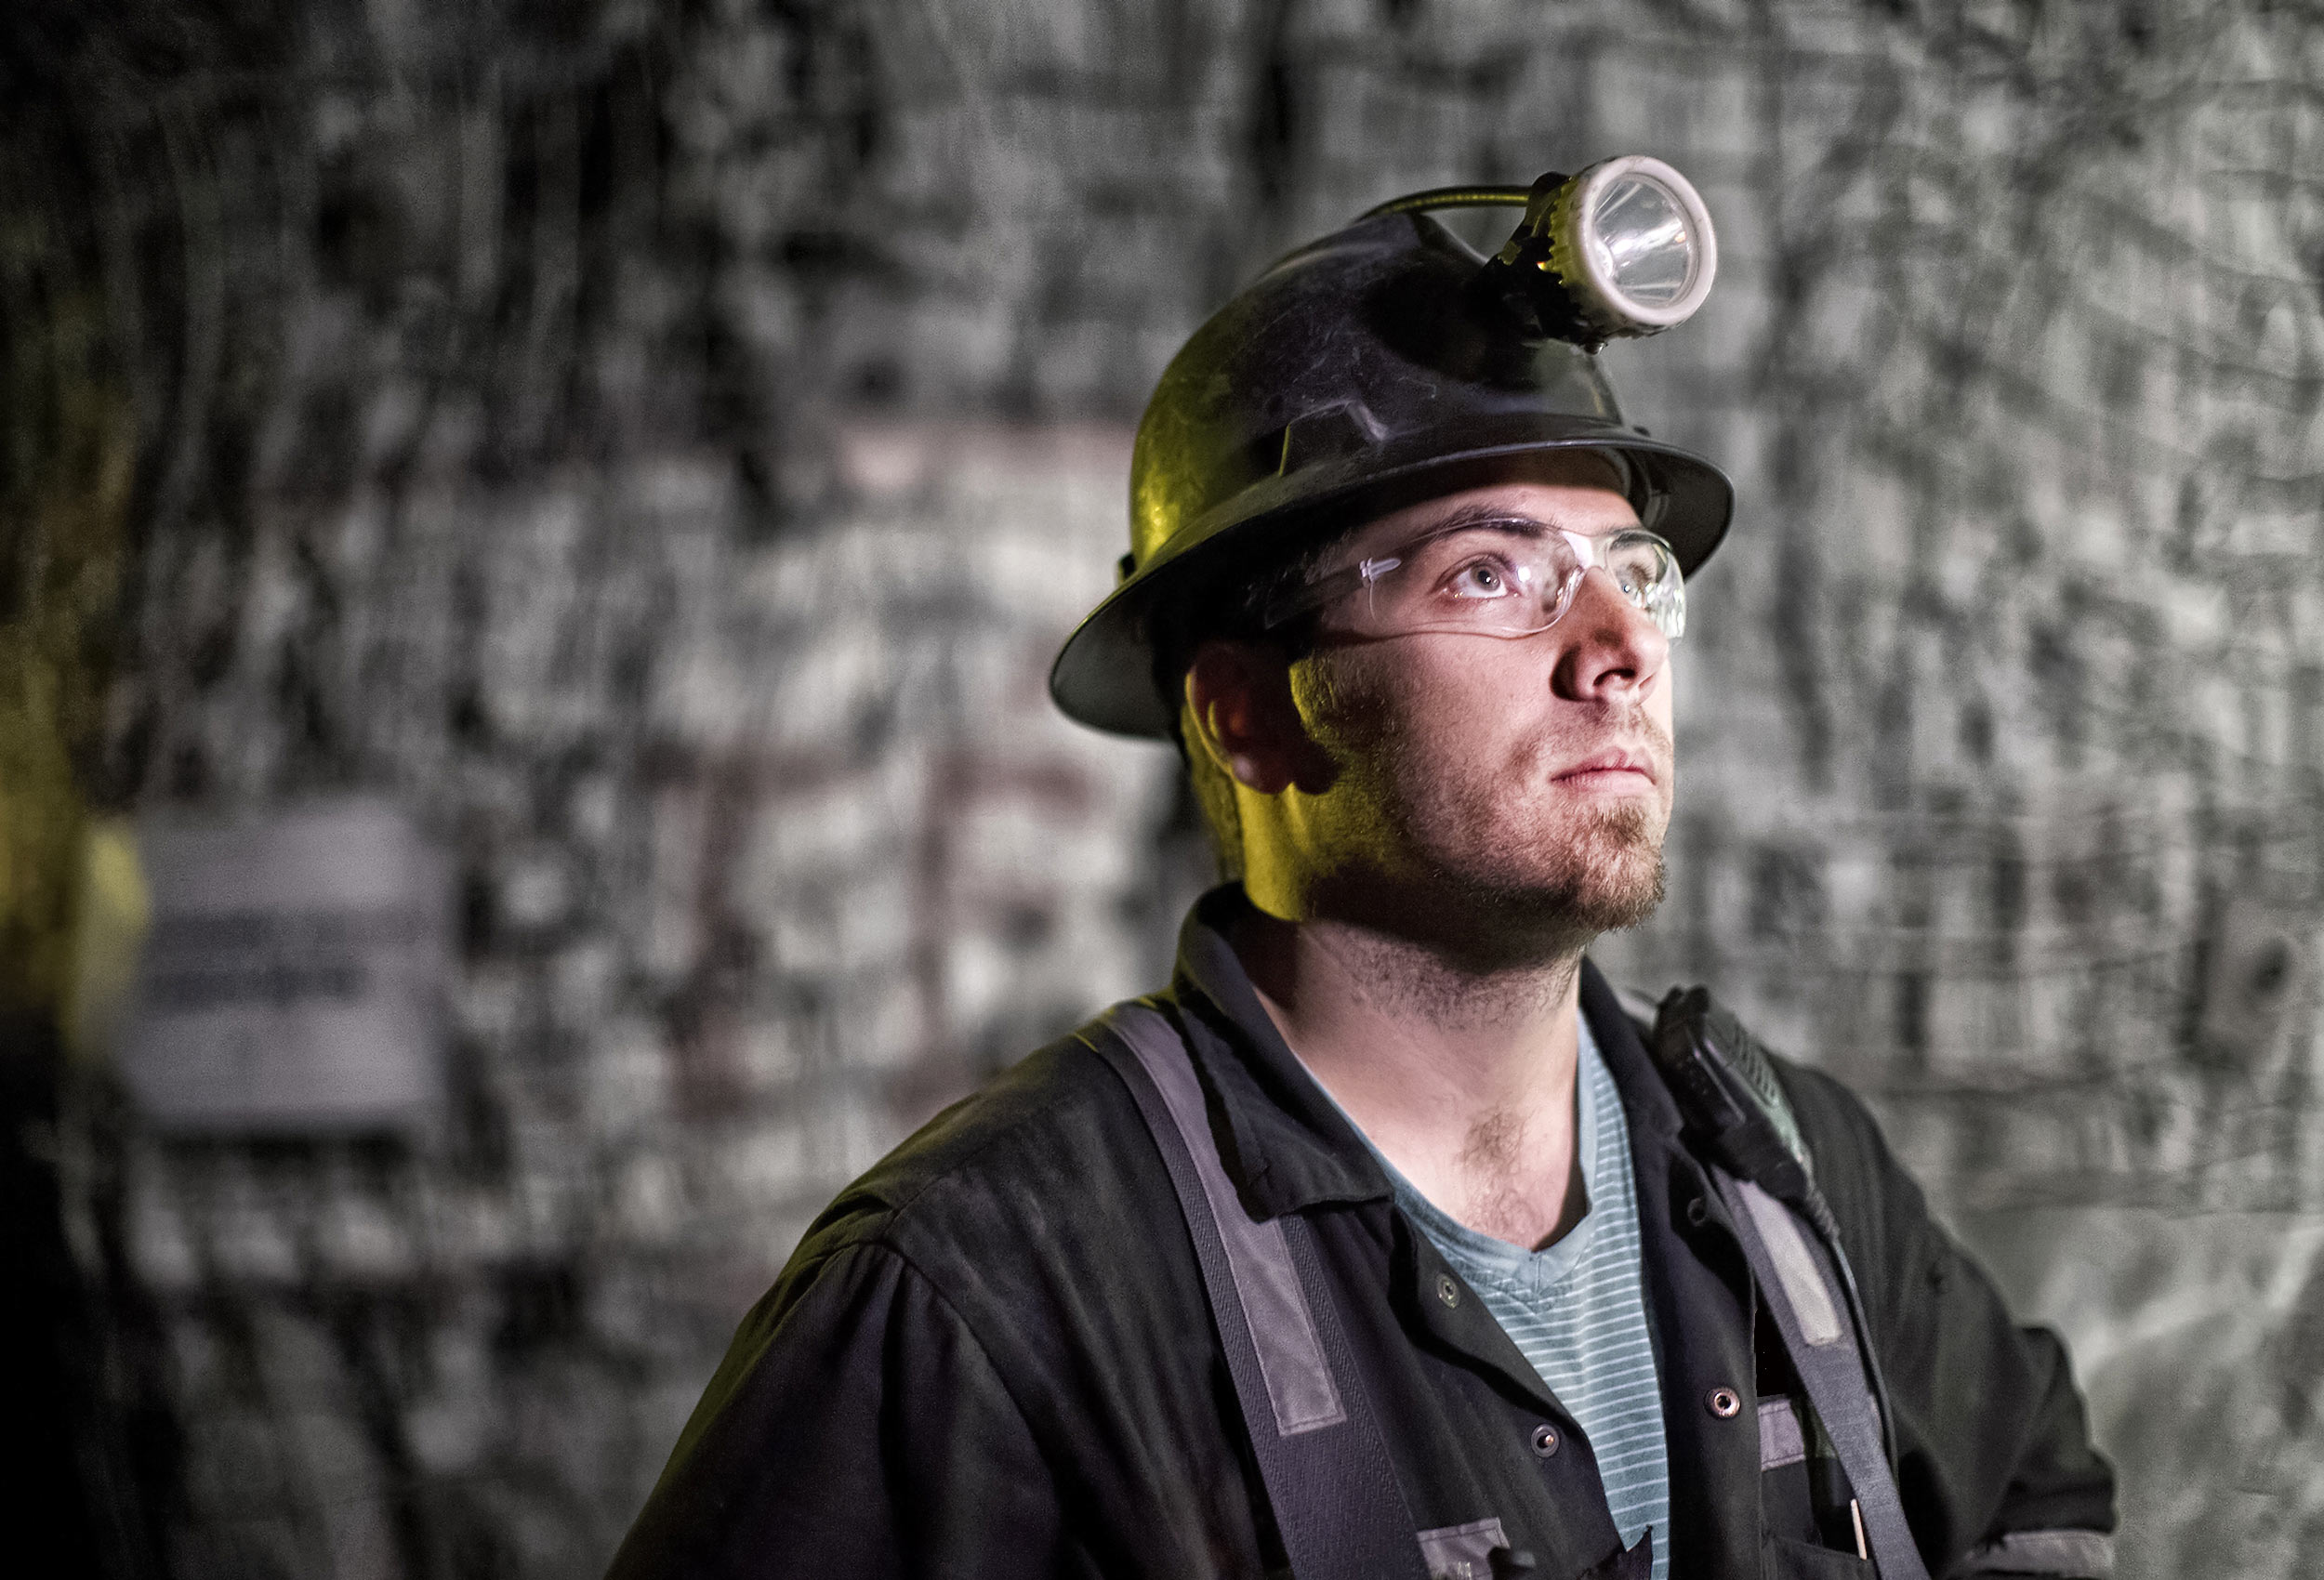 a-portrait-of-an-iamgold-gold-miner-at-their-mine-in-rouyn-norand-quebec-canada